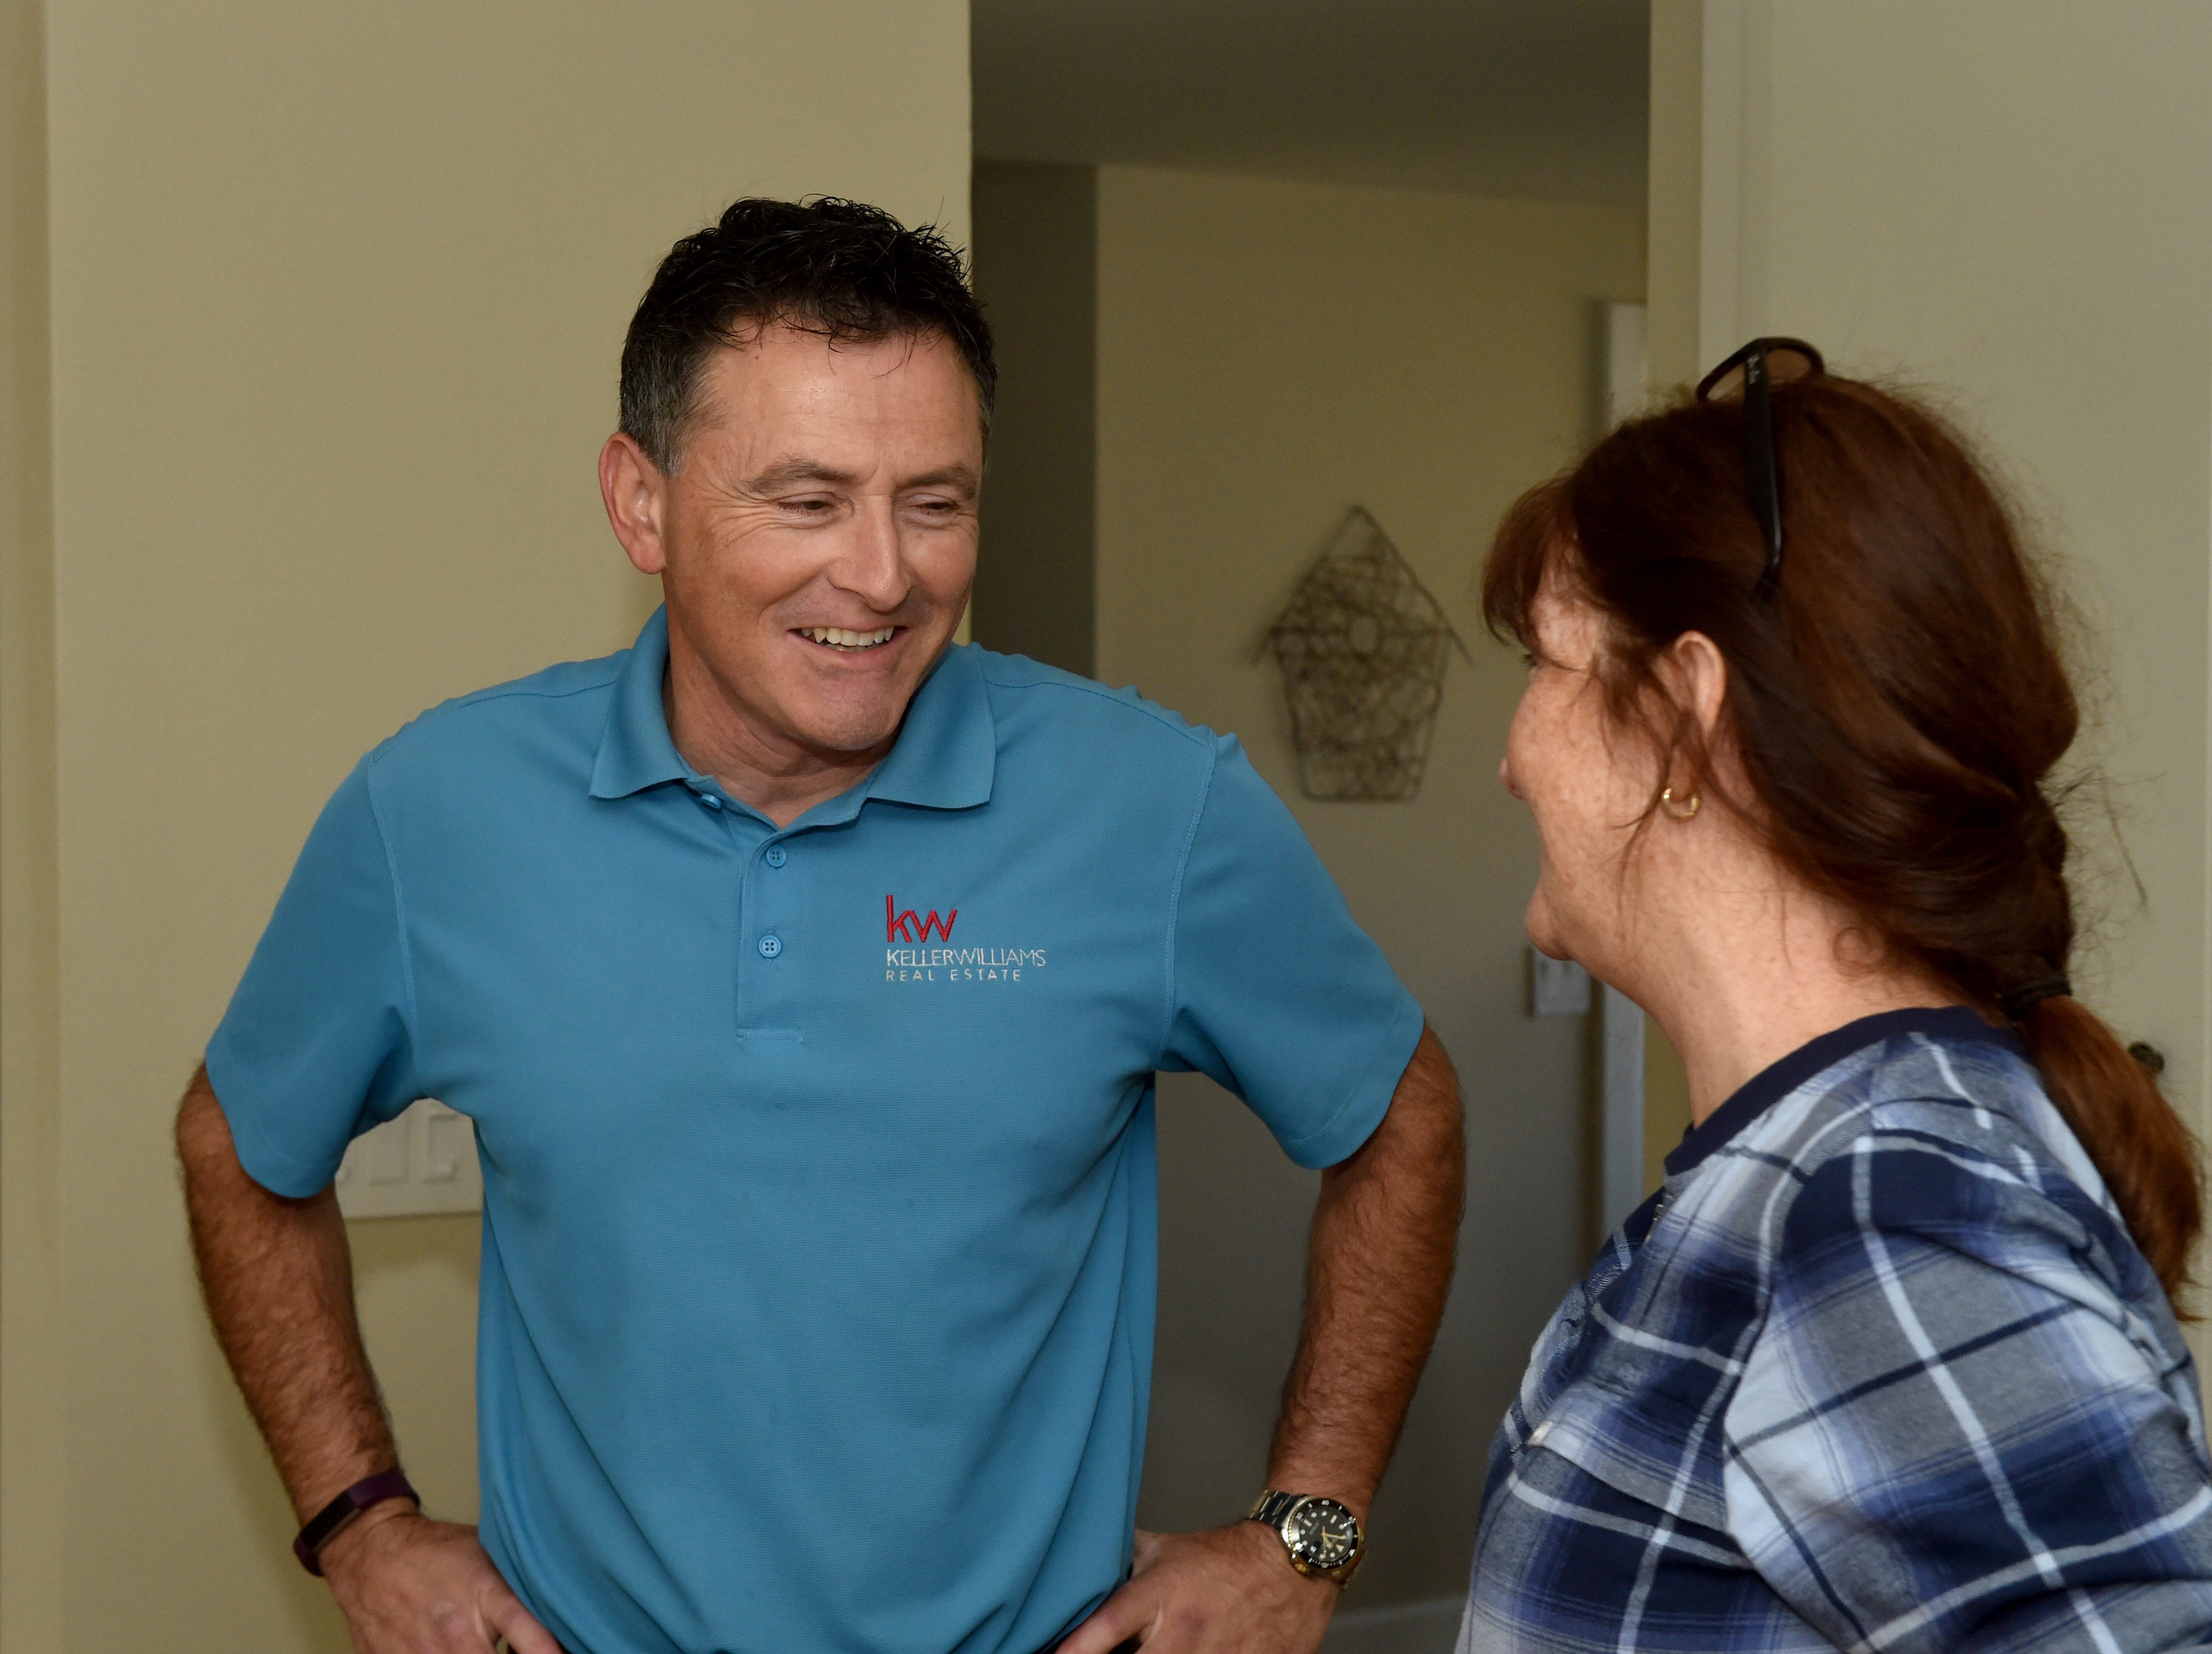 Jeff Landau, a local real estate agent working to stand out from his competitors, speaks with client Barbara Siminski at her home in Thousand Oaks.